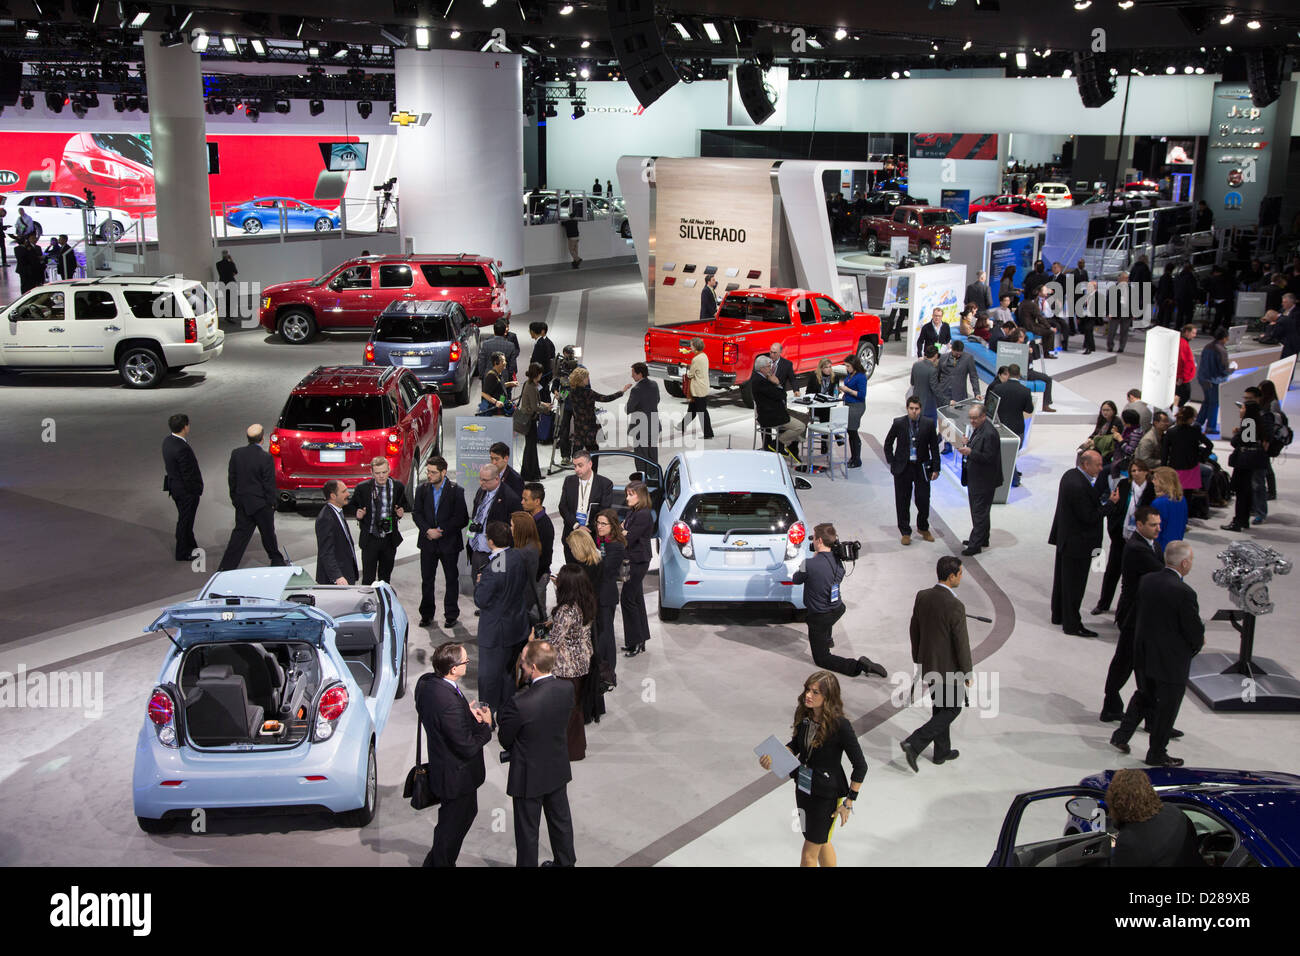 Detroit, Michigan - Part of the General Motors display at the North American International Auto Show. - Stock Image